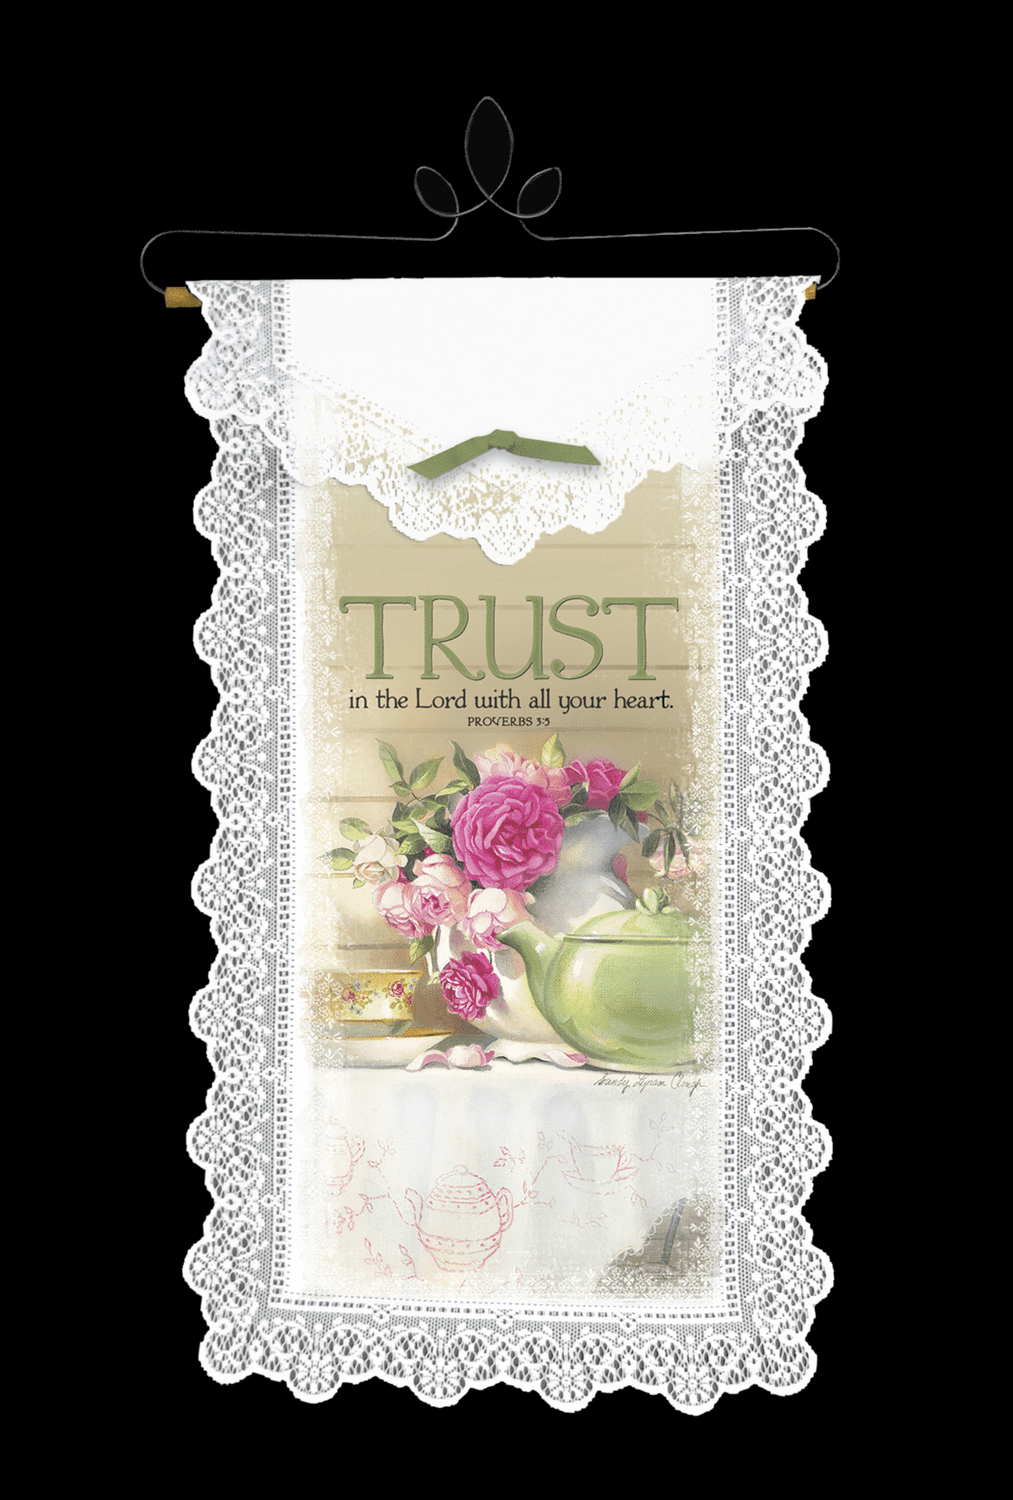 Inspirational Wall Decor, Trust in the Lord